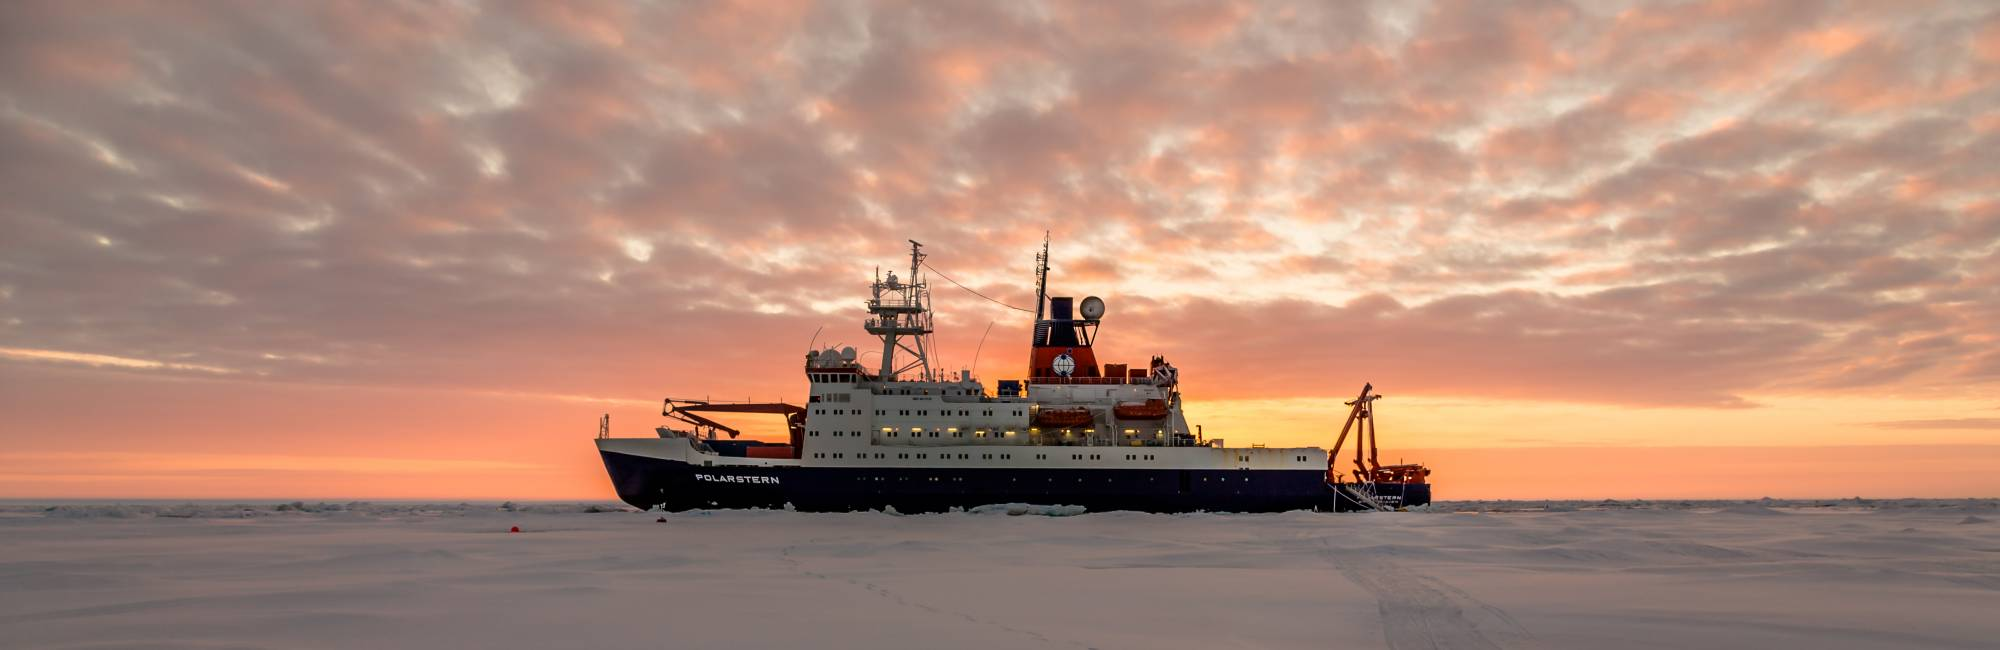 The Polarstern ship parked in Arctic ice at sunset.